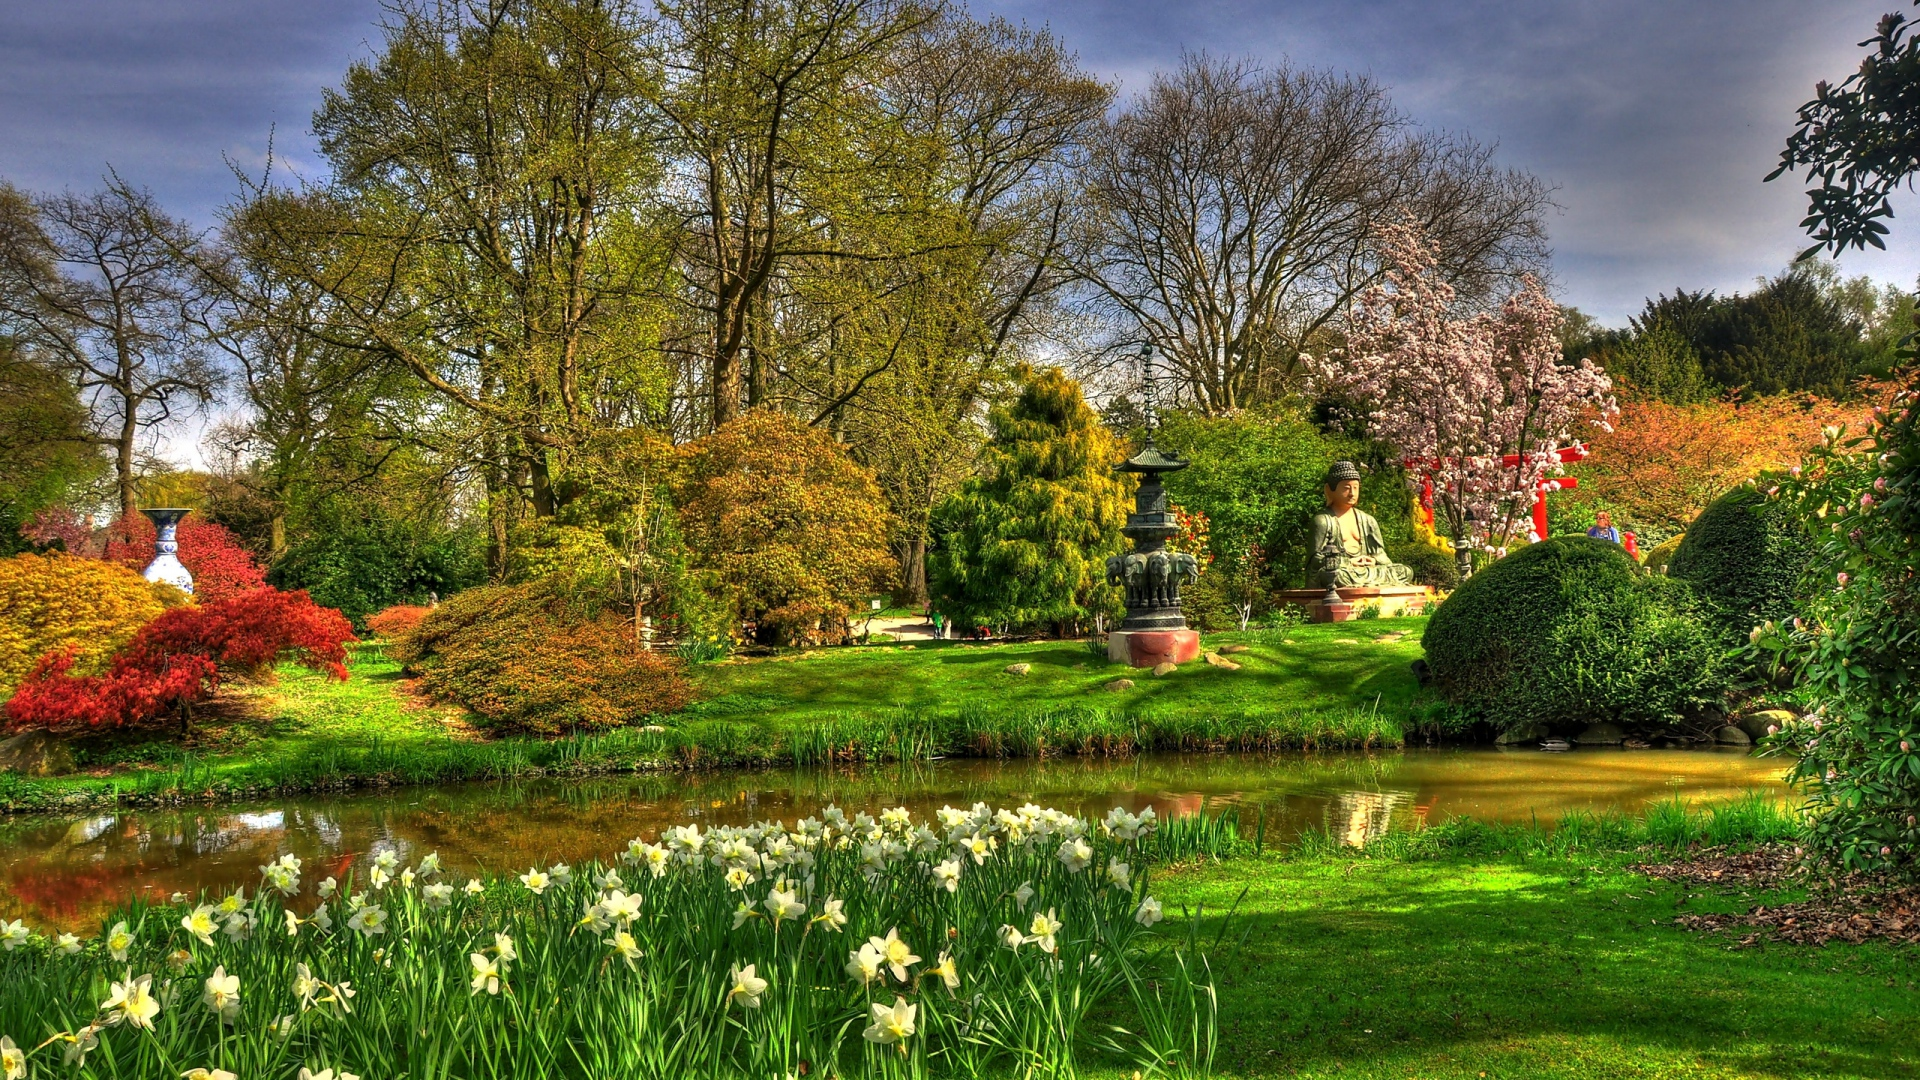 Download Wallpaper 1920x1080 Flowers Narcissuses Pond Garden